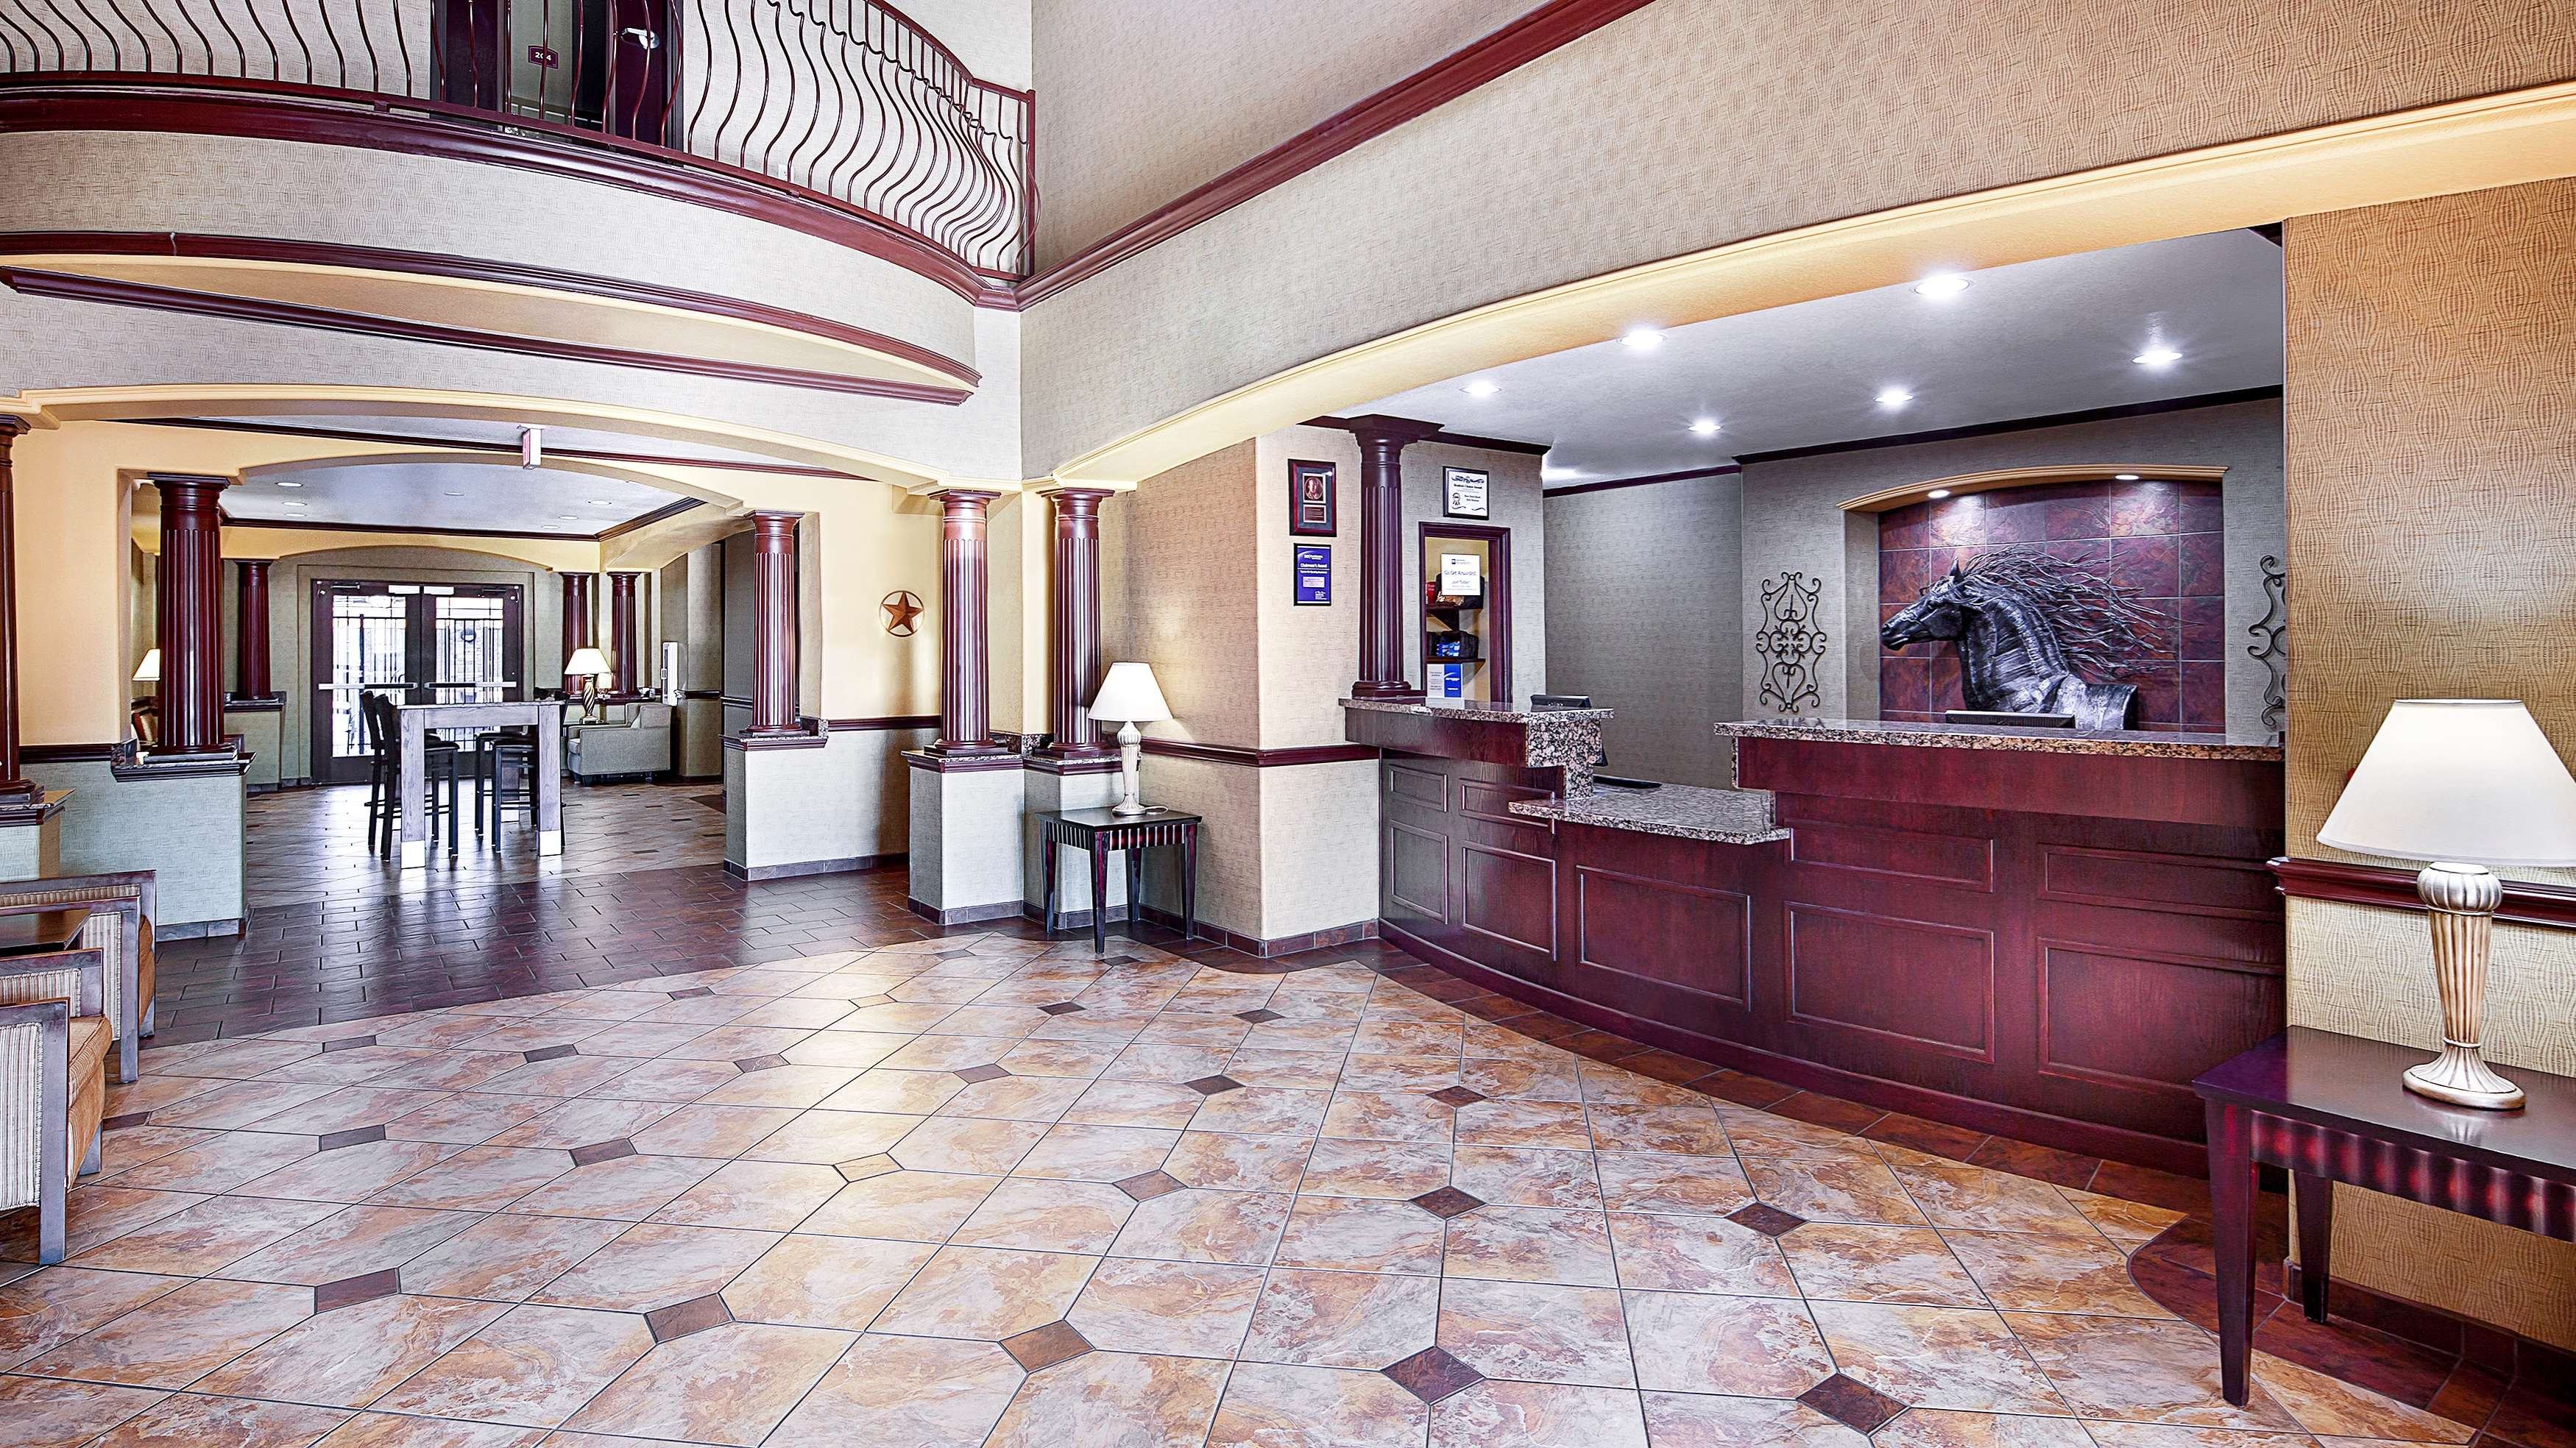 Best Western Plus Royal Mountain Inn & Suites image 4